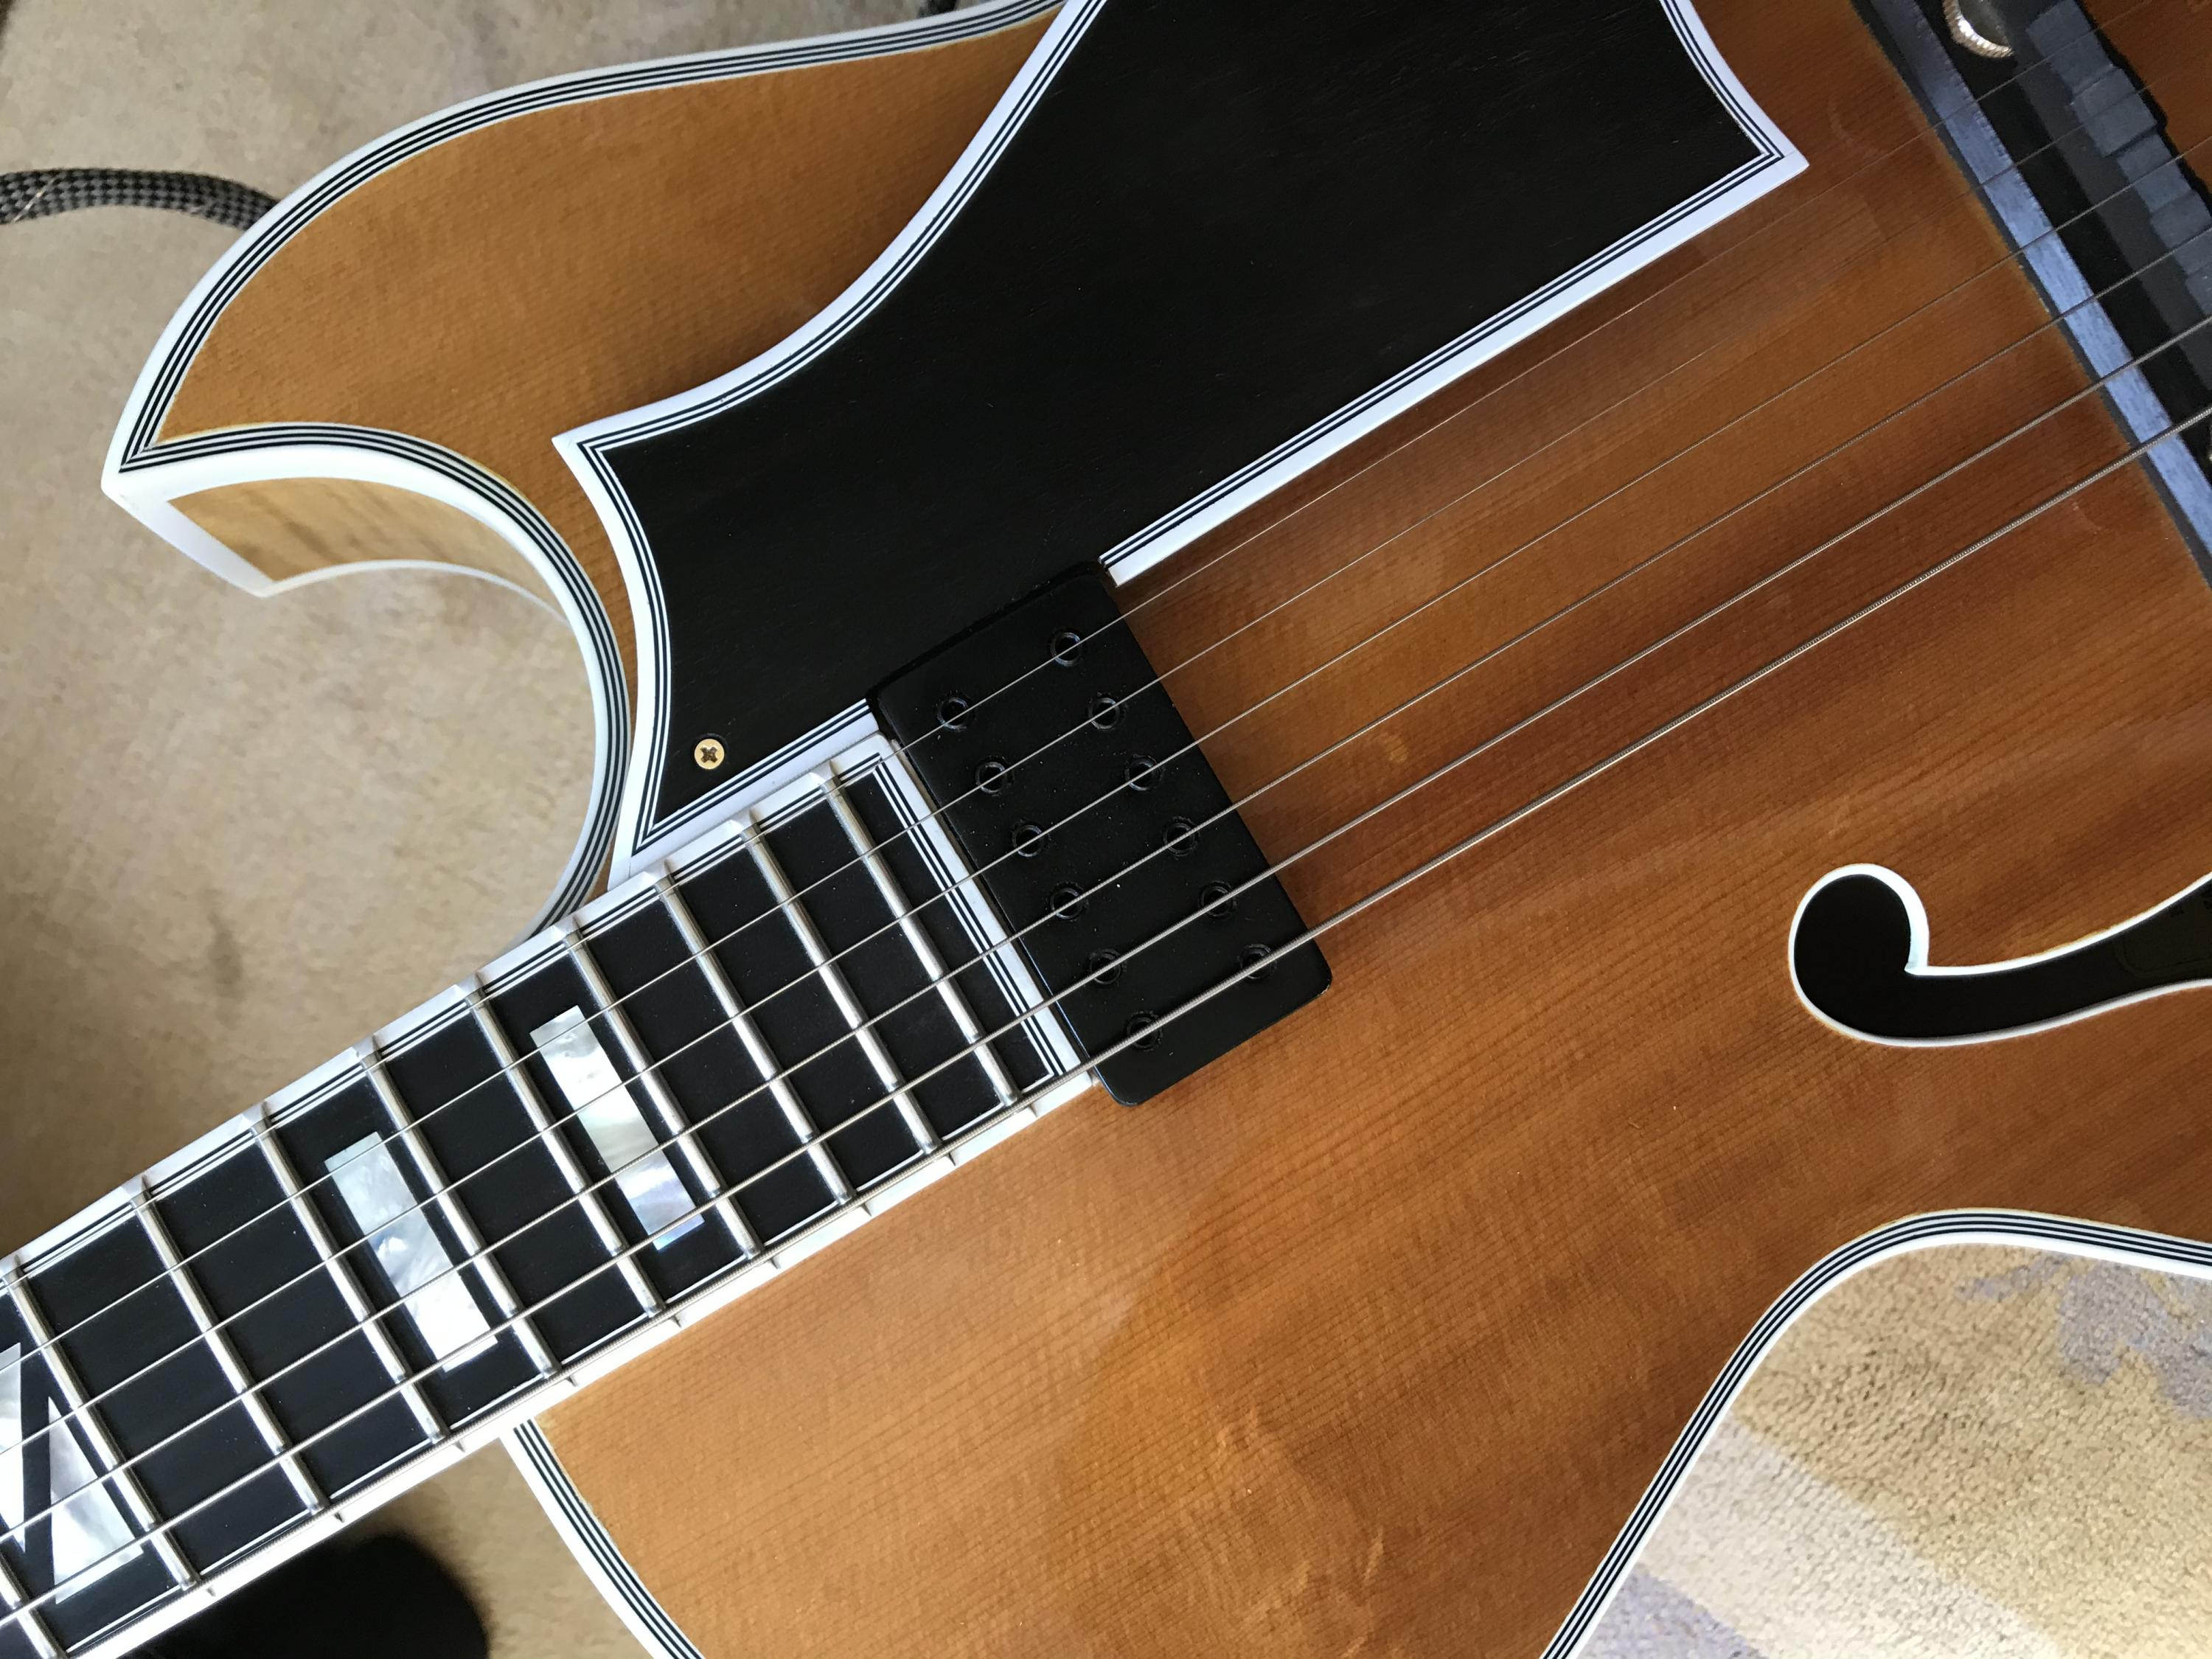 Two good things about Heritage guitars-img_6522-jpg